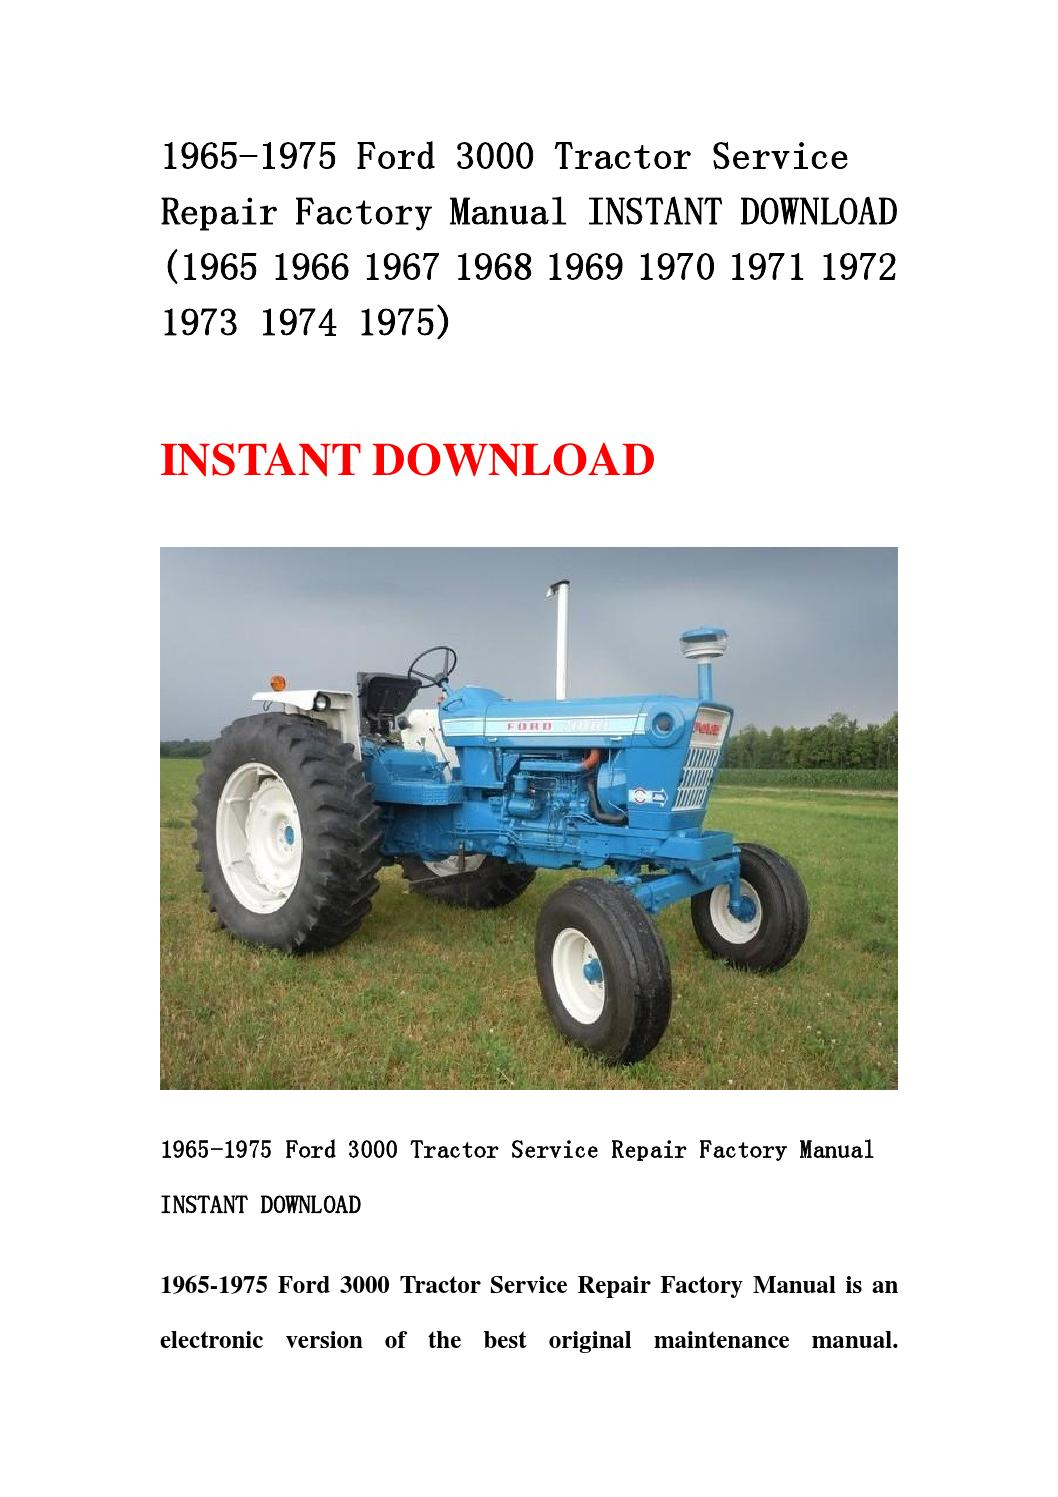 ford  tractor service repair factory manual instant